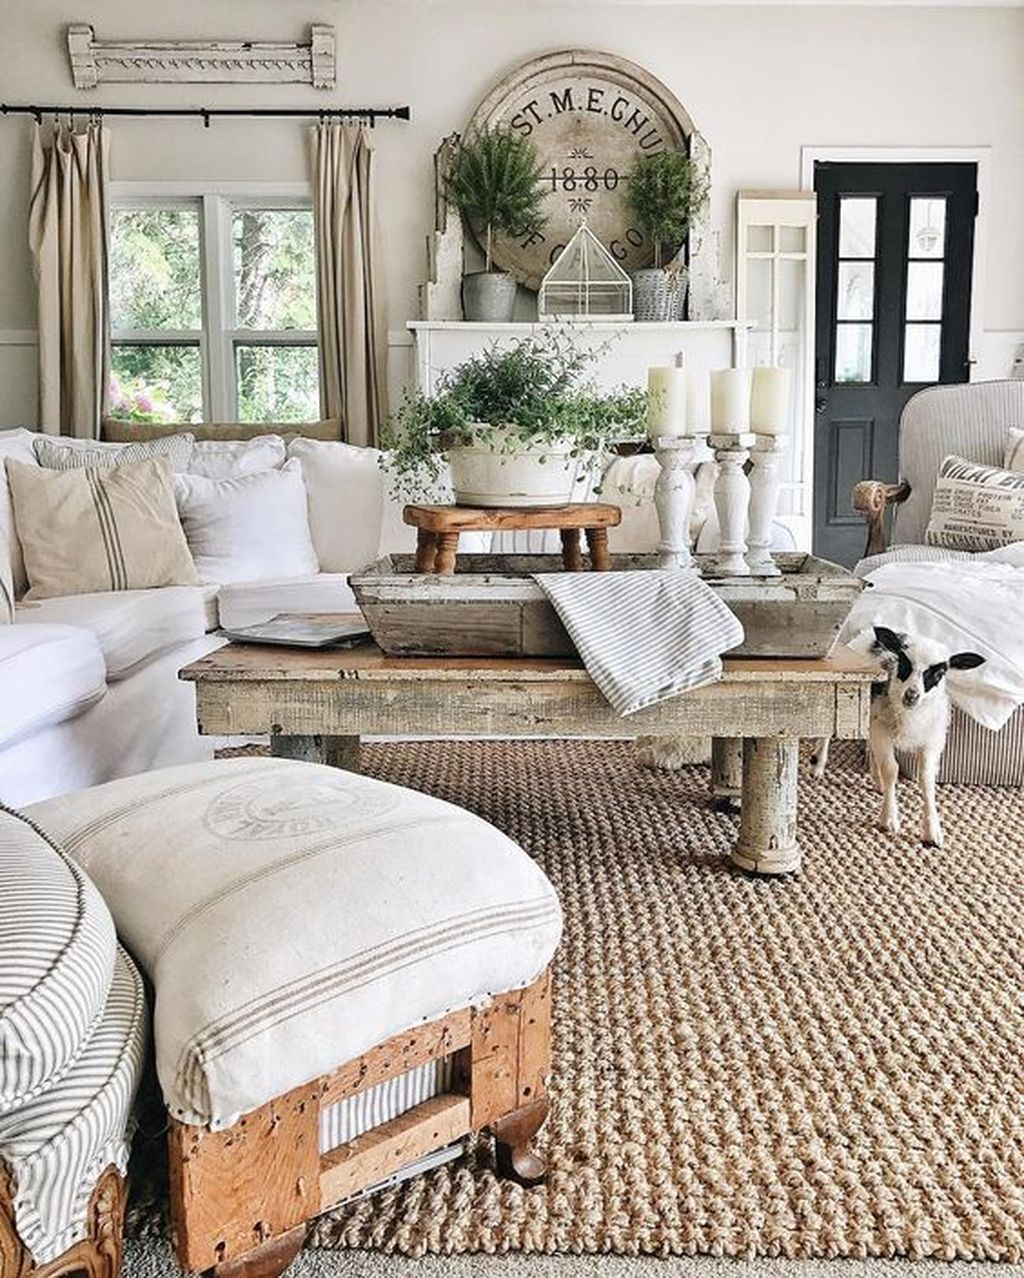 Chic Elegance Of Neutral Colors For The Living Room 10 Amazing Examples: Creative DIY Shabby Chic Decoration Ideas For Your Living